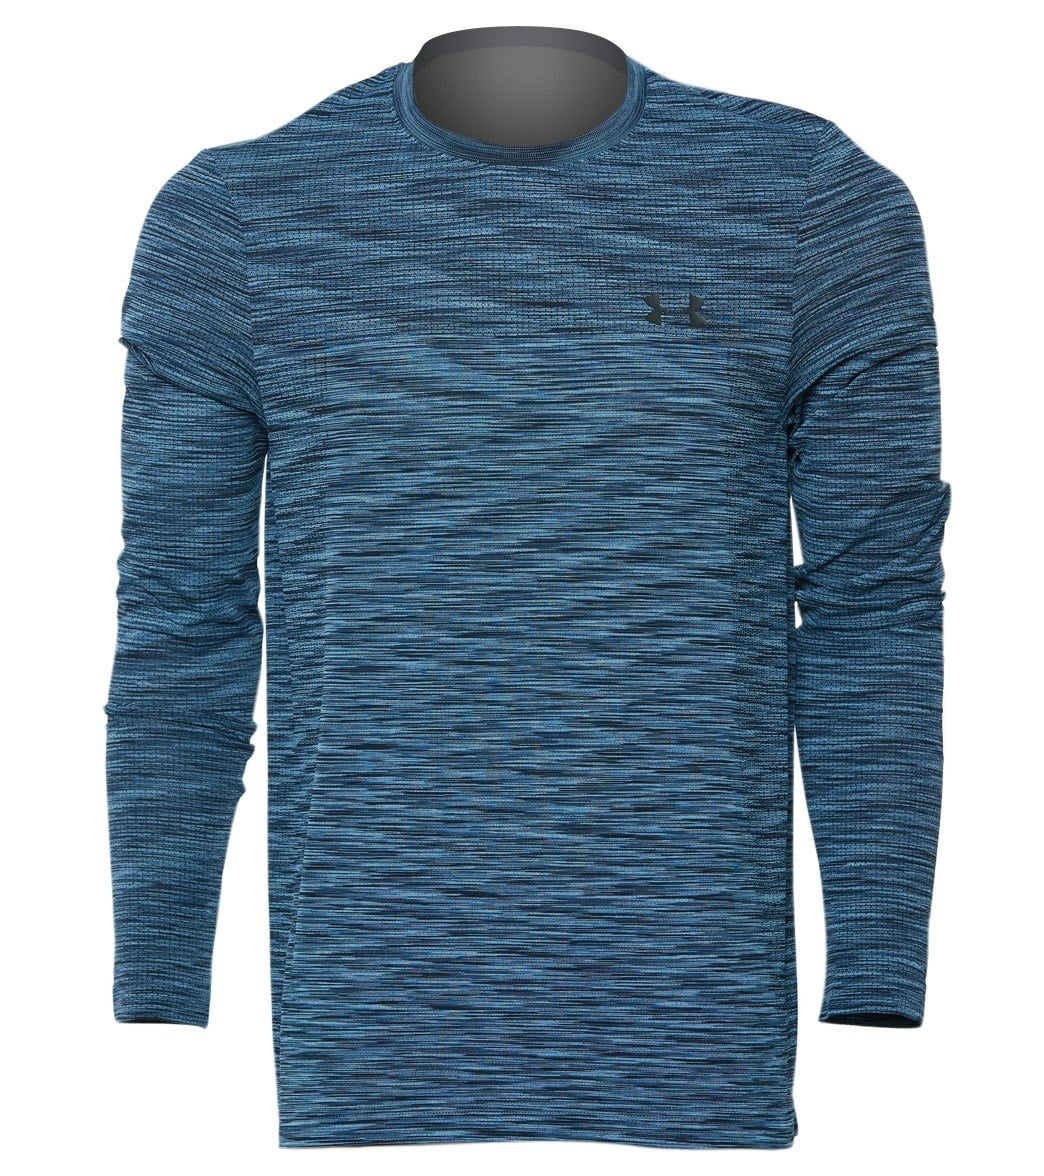 785b18197 Under Armour Men's UA Vanish Seamless Long Sleeve Shirt at SwimOutlet.com -  Free Shipping